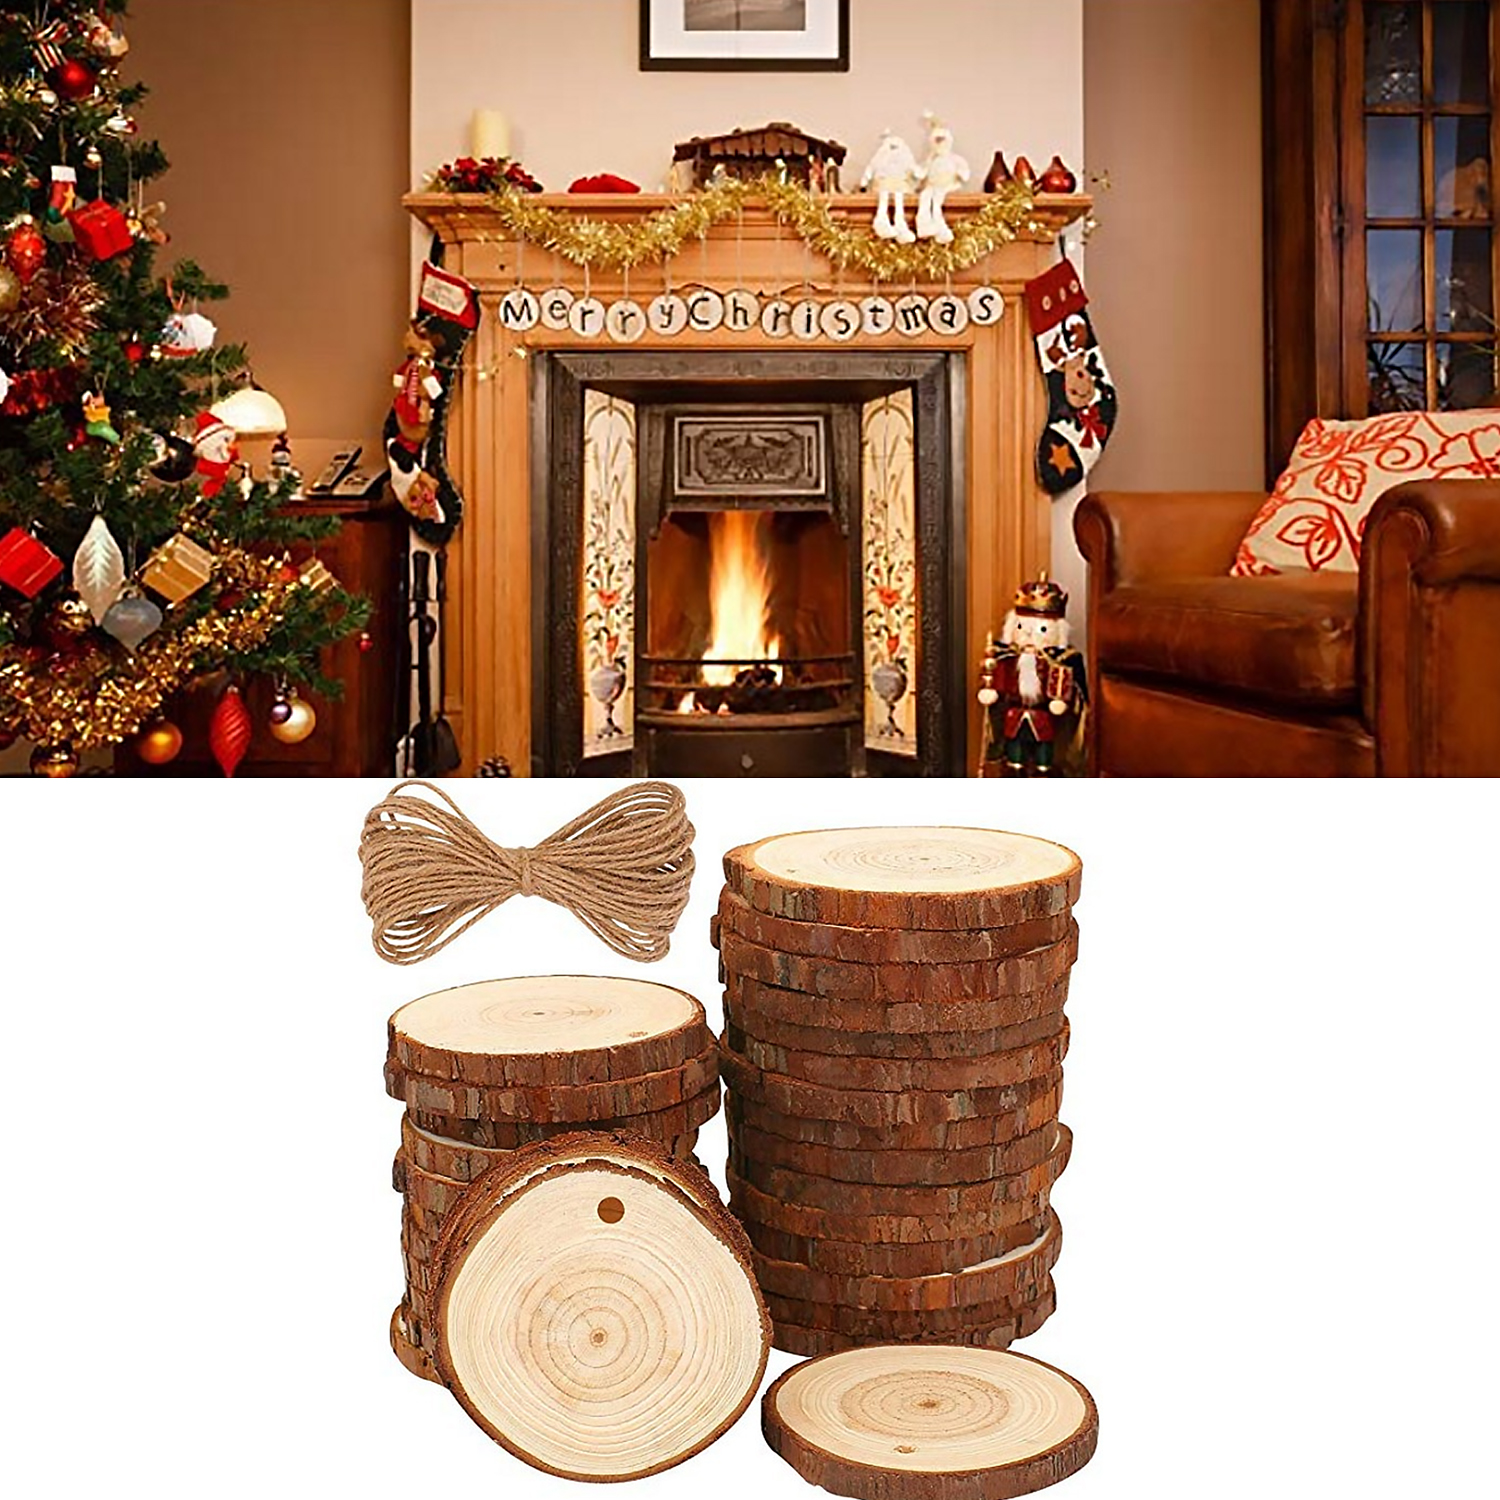 Besegad 30PCS Unfinished Natural Wood Slices With Hole For Christmas Party Ornaments Decorations DIY Hand-painted Crafts